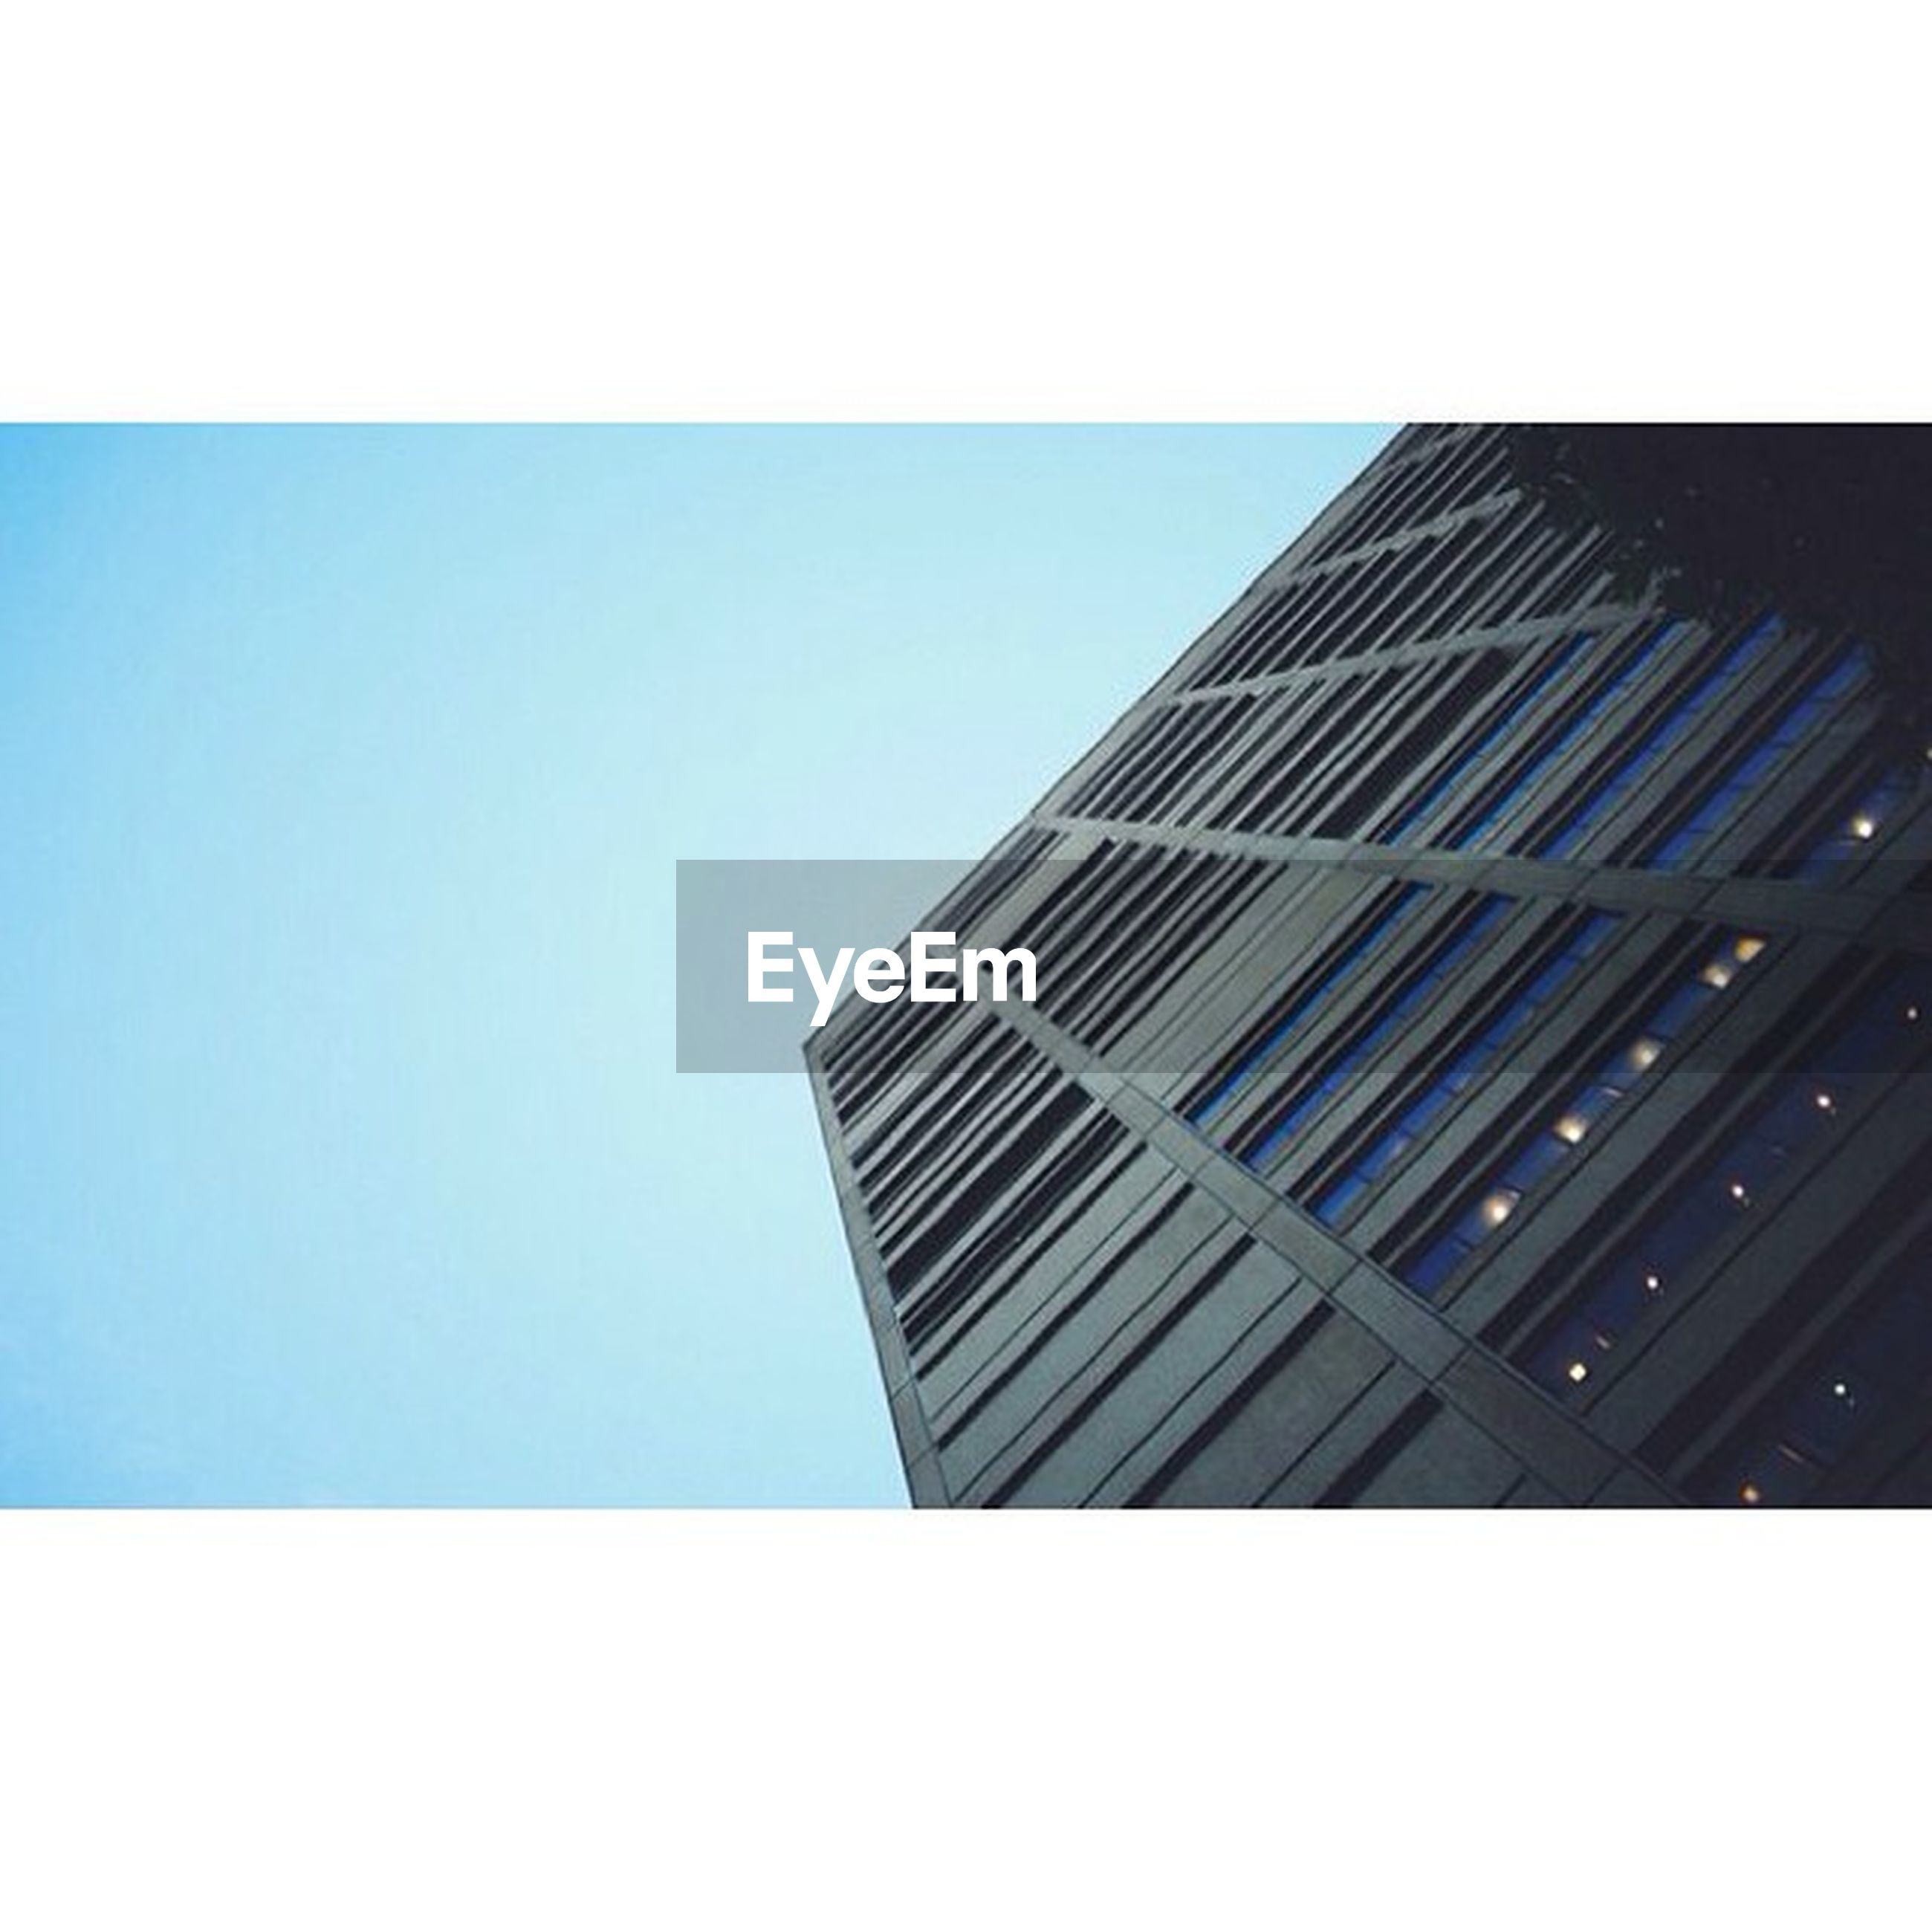 building exterior, architecture, built structure, low angle view, clear sky, office building, modern, skyscraper, tall - high, city, tower, transfer print, copy space, building, auto post production filter, blue, tall, glass - material, day, sky